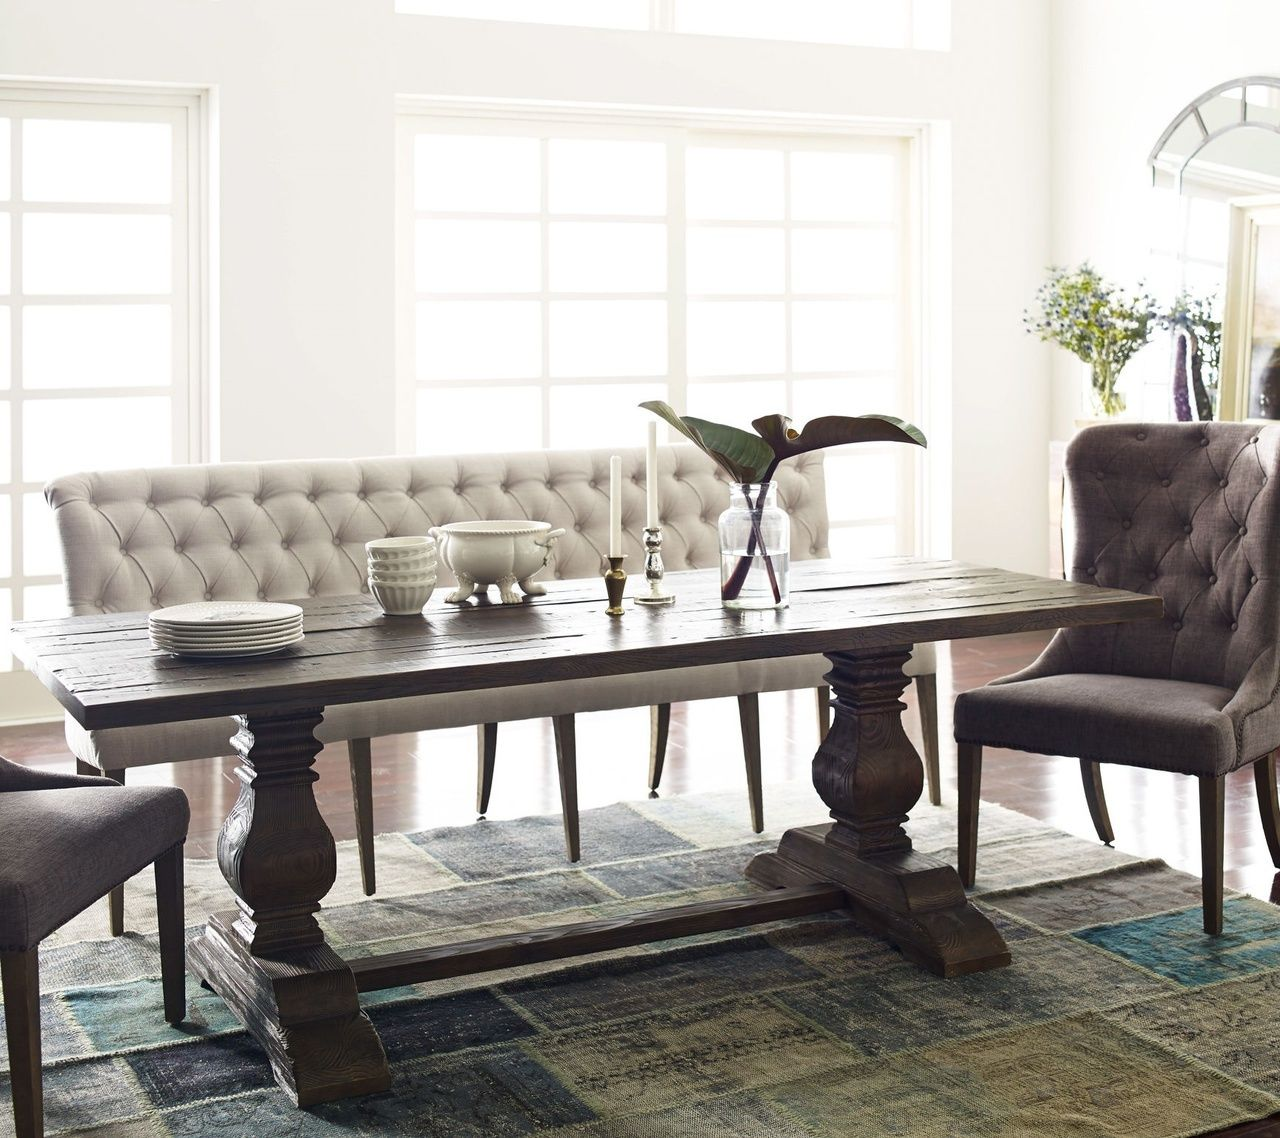 Dining Room Table With Chairs And Bench: French Tufted Upholstered Dining Bench Banquette In 2019